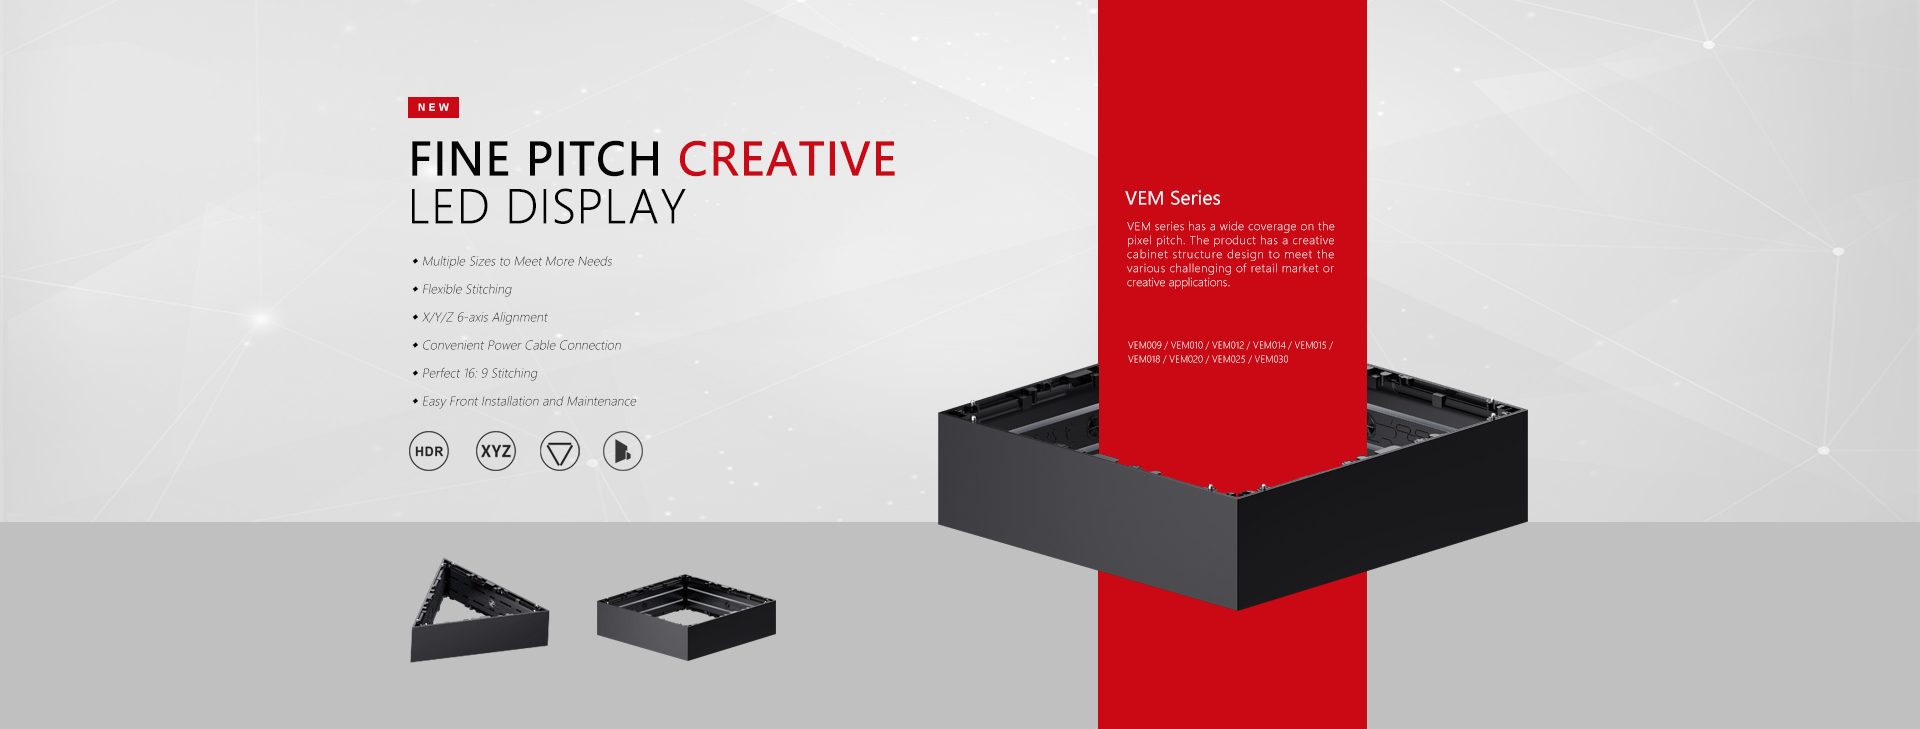 VEM SERIES FINE PITCH CREATIVE LED DISPLAY